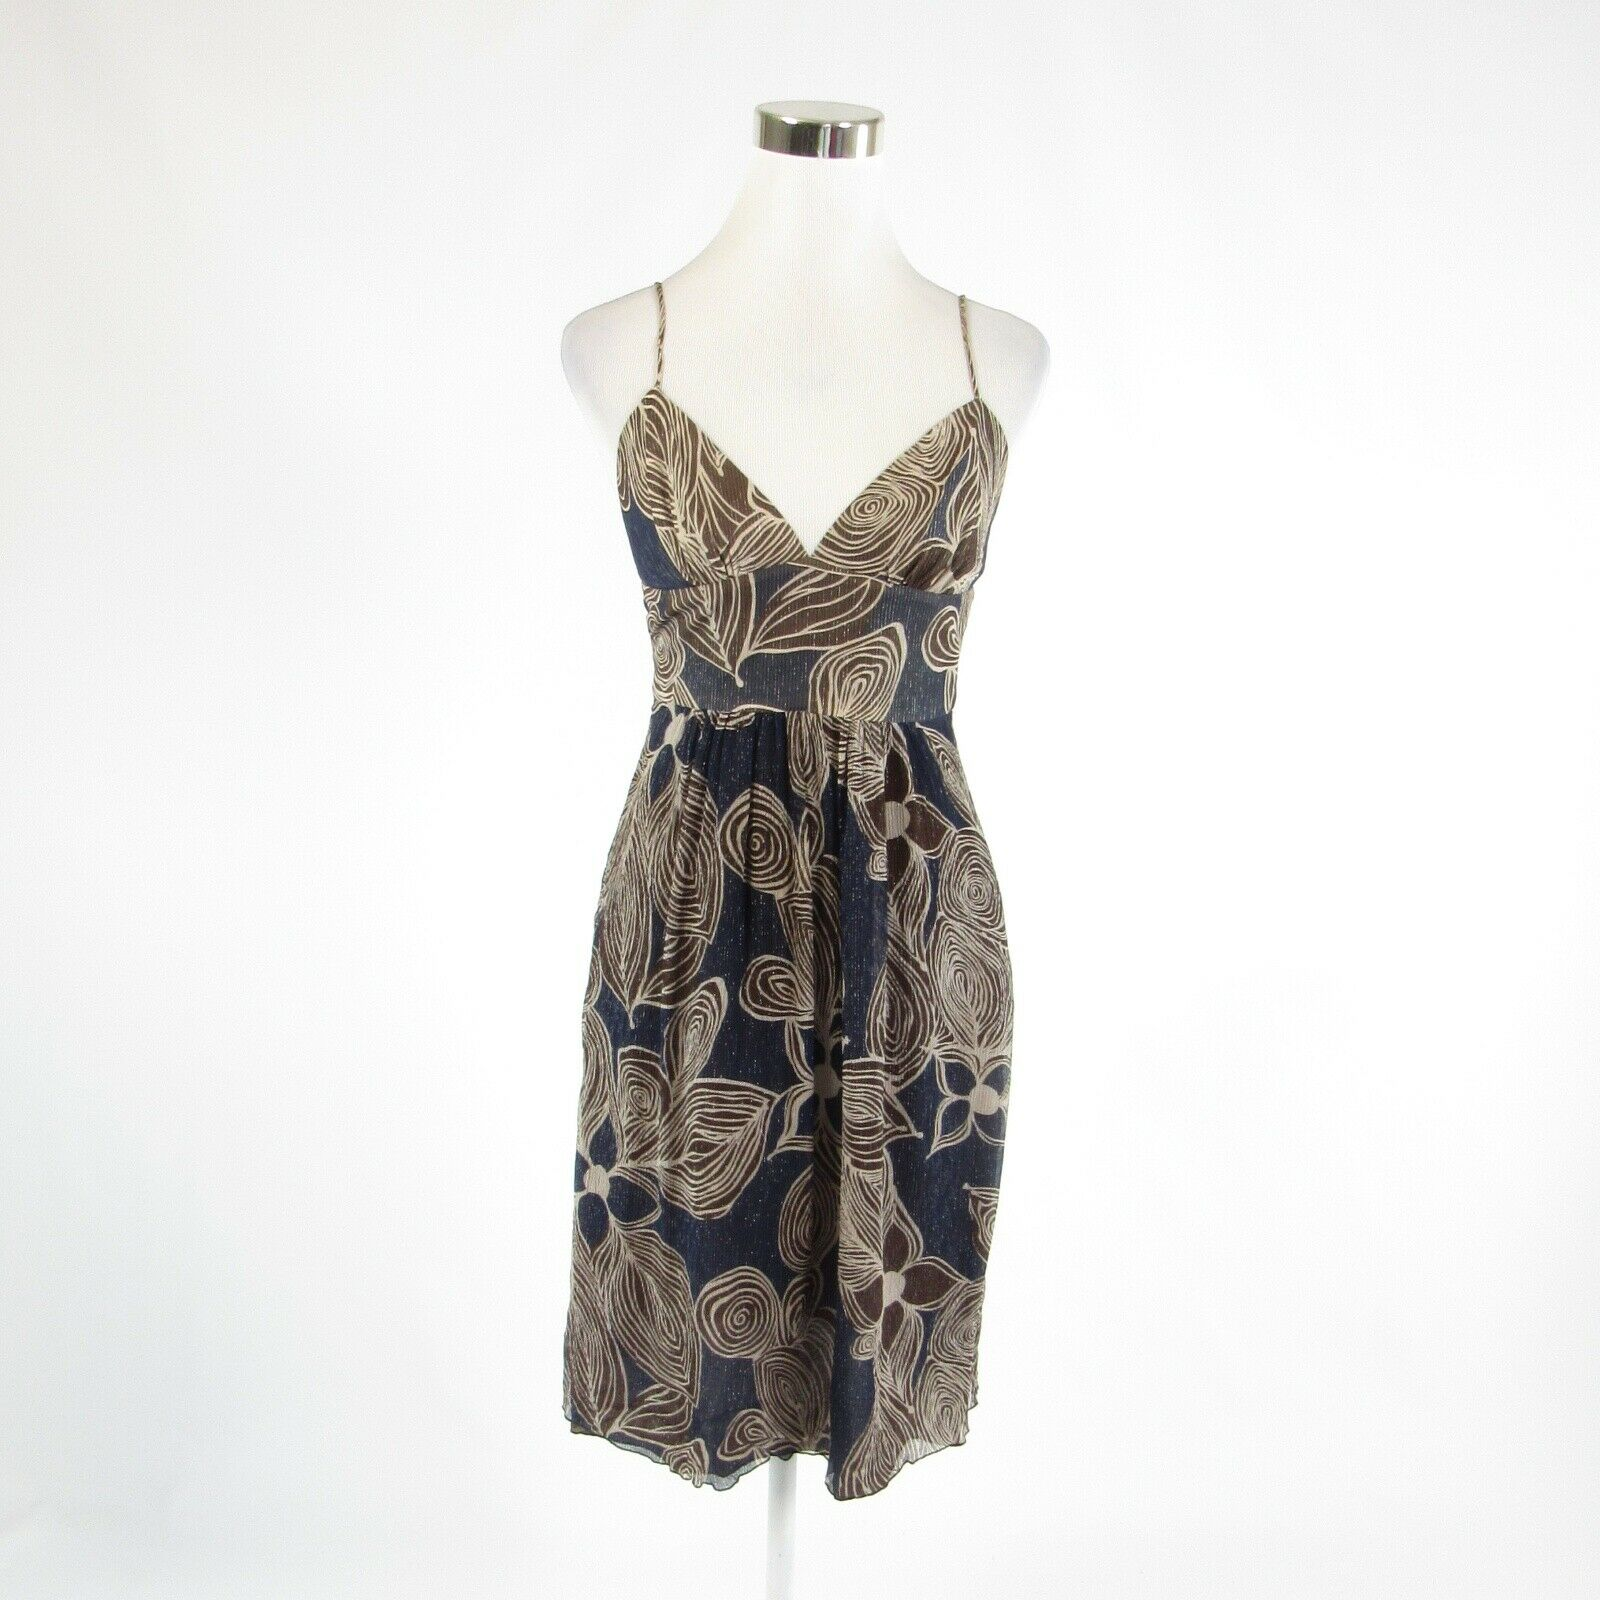 Navy blue brown geometric ANTHROPOLOGIE TRINA TURK empire waist dress 2-Newish